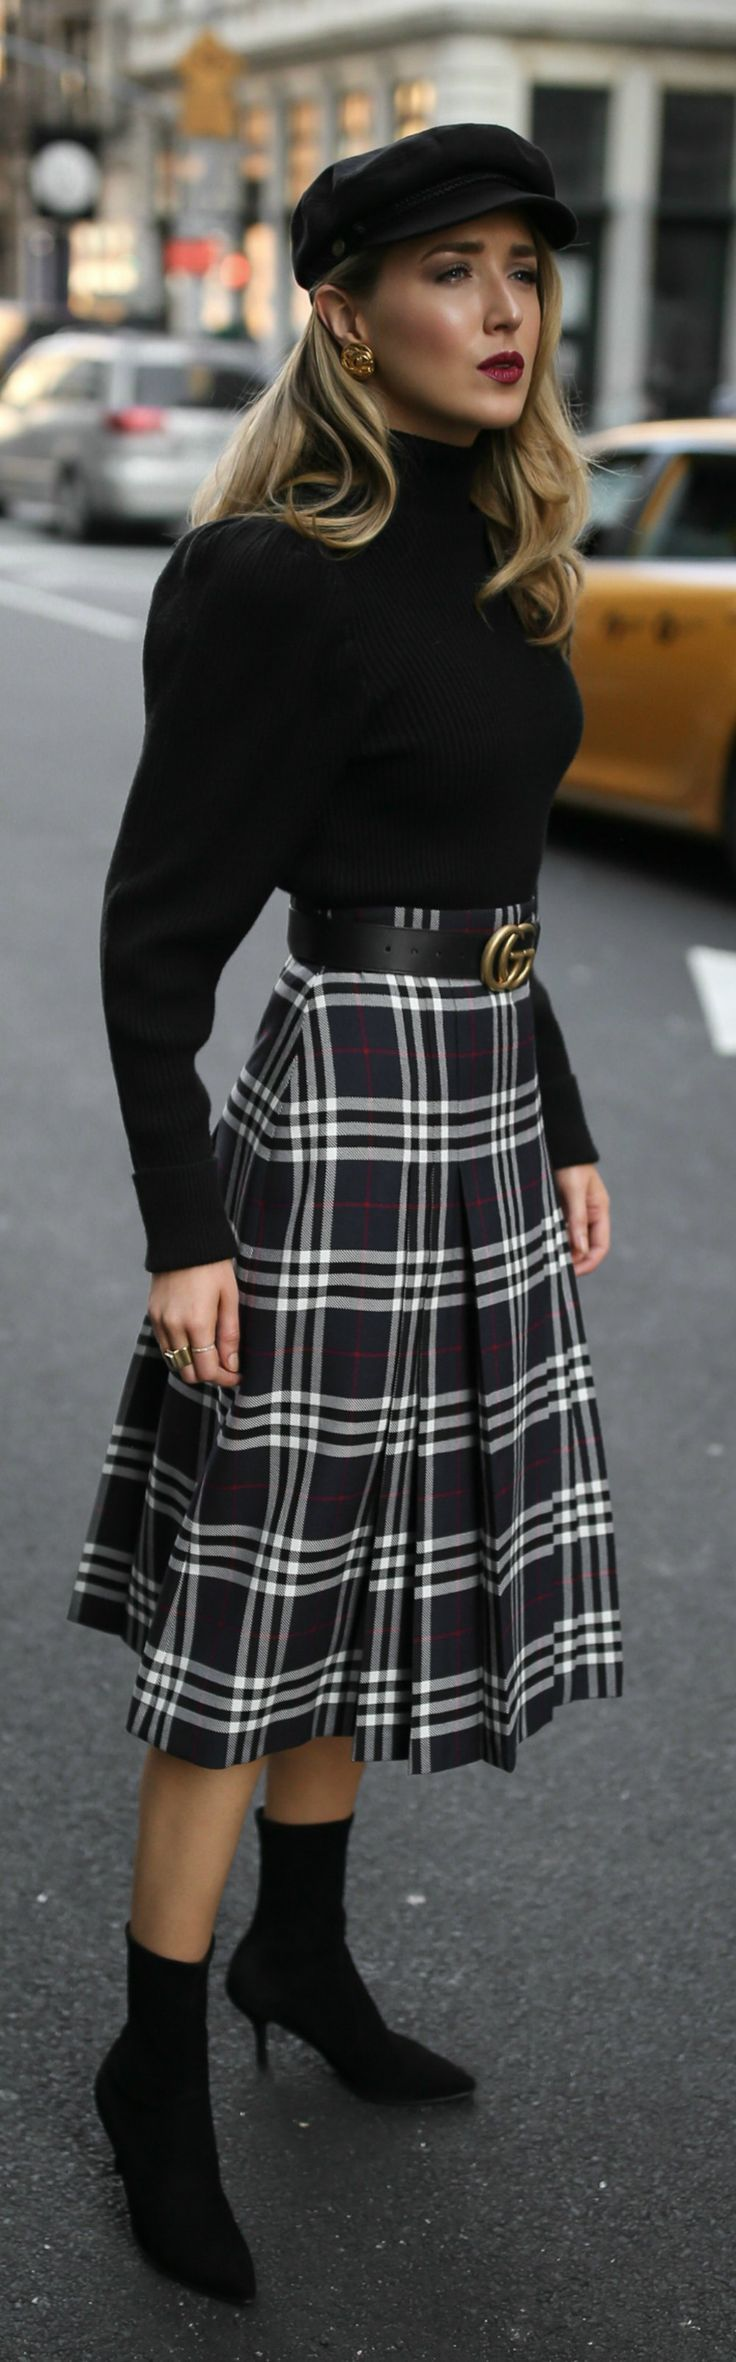 Pleated plaid midi skirt black puffedshoulder turtleneck black